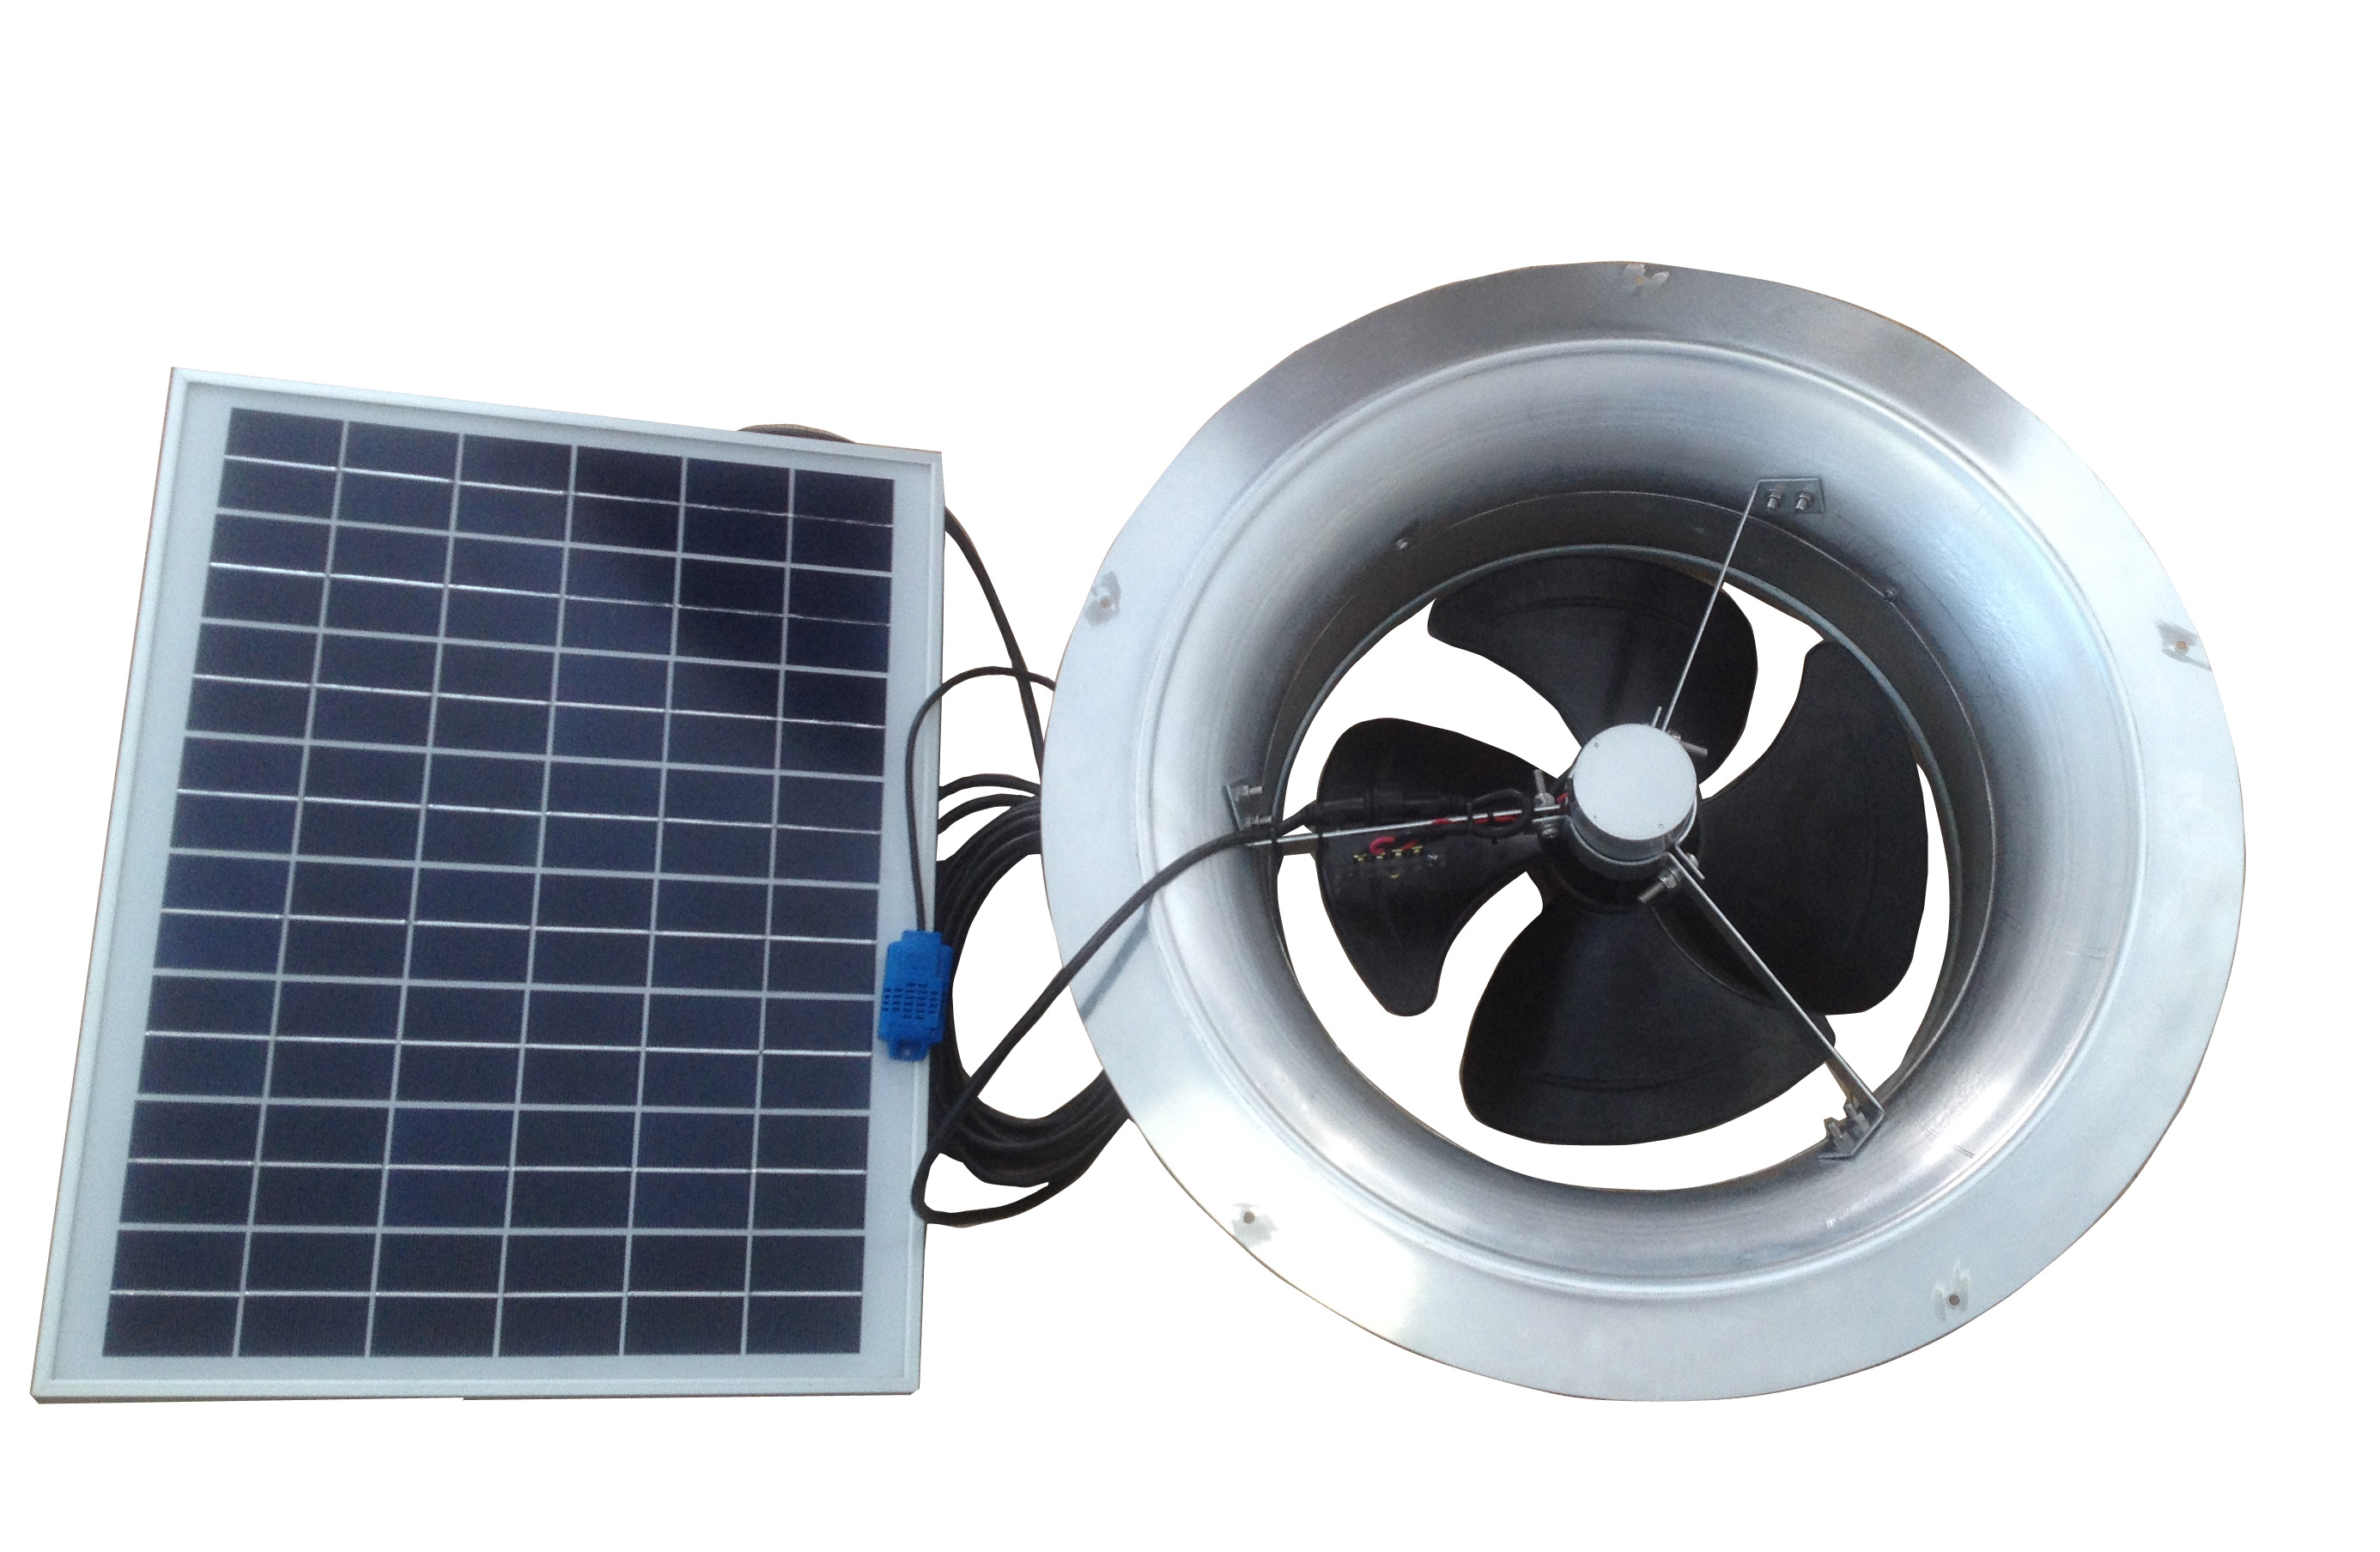 20 Watt Gable Mount Remote Panel Solar Attic Fan Remington Solar pertaining to proportions 2772 X 1808